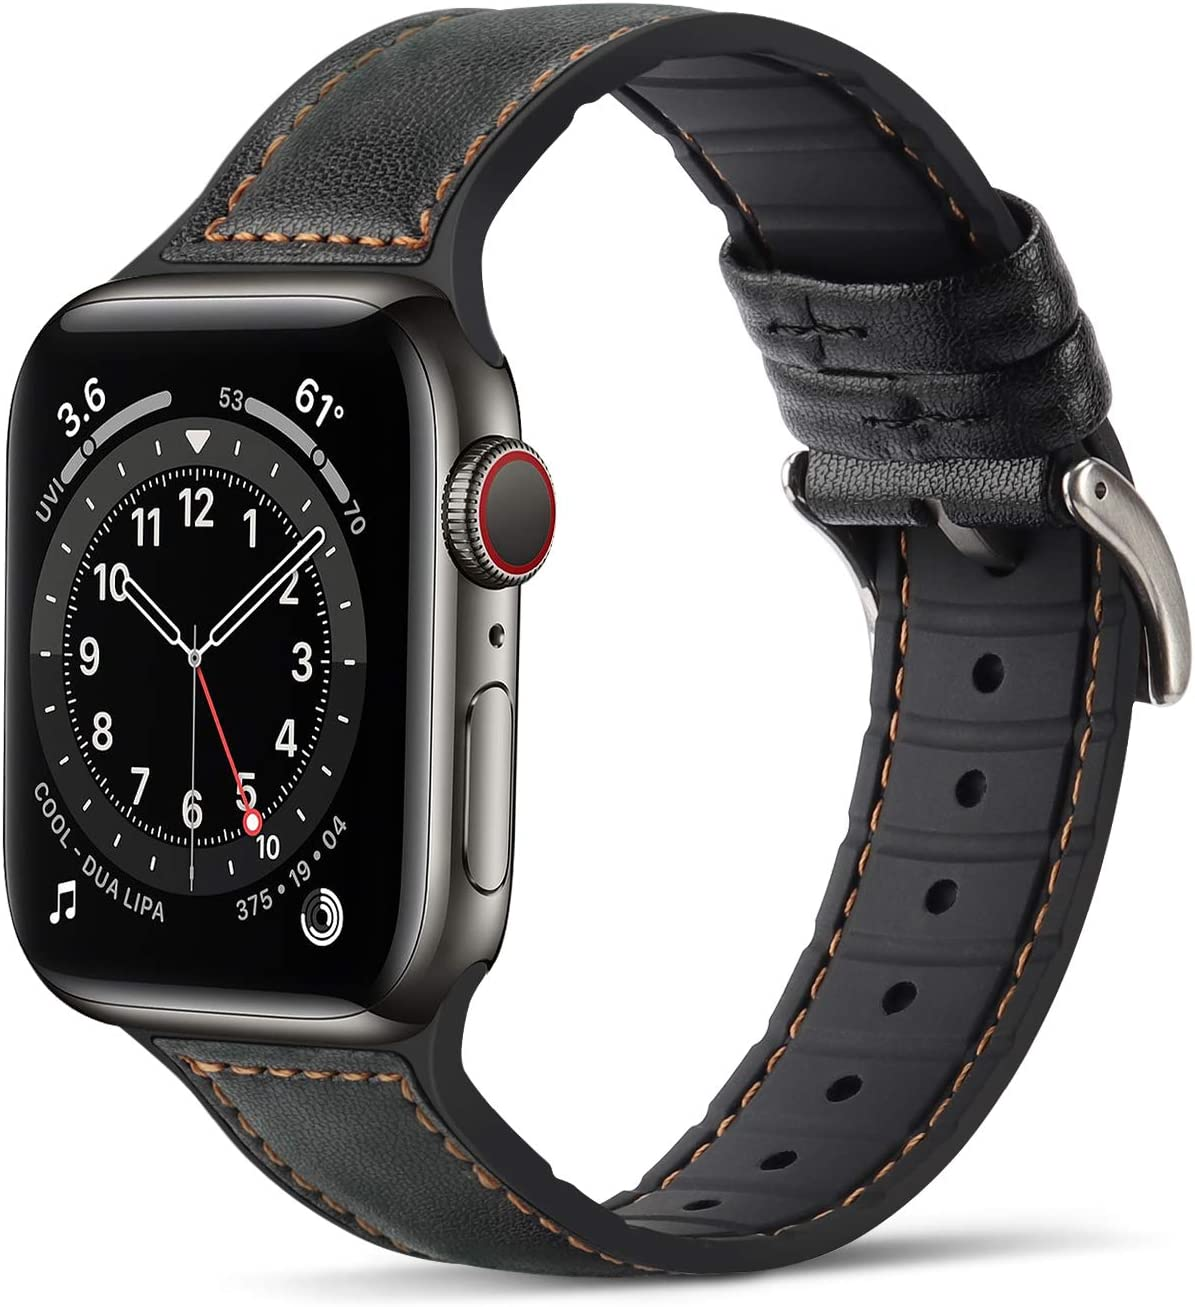 Tasikar Bands Compatible with Apple Watch Band 38mm 40mm, Genuine Leather with Soft Silicone Hybrid Design Replacement Strap Compatible with Apple Watch SE Series 6 5 4 3 2 1- (38mm 40mm, Black)